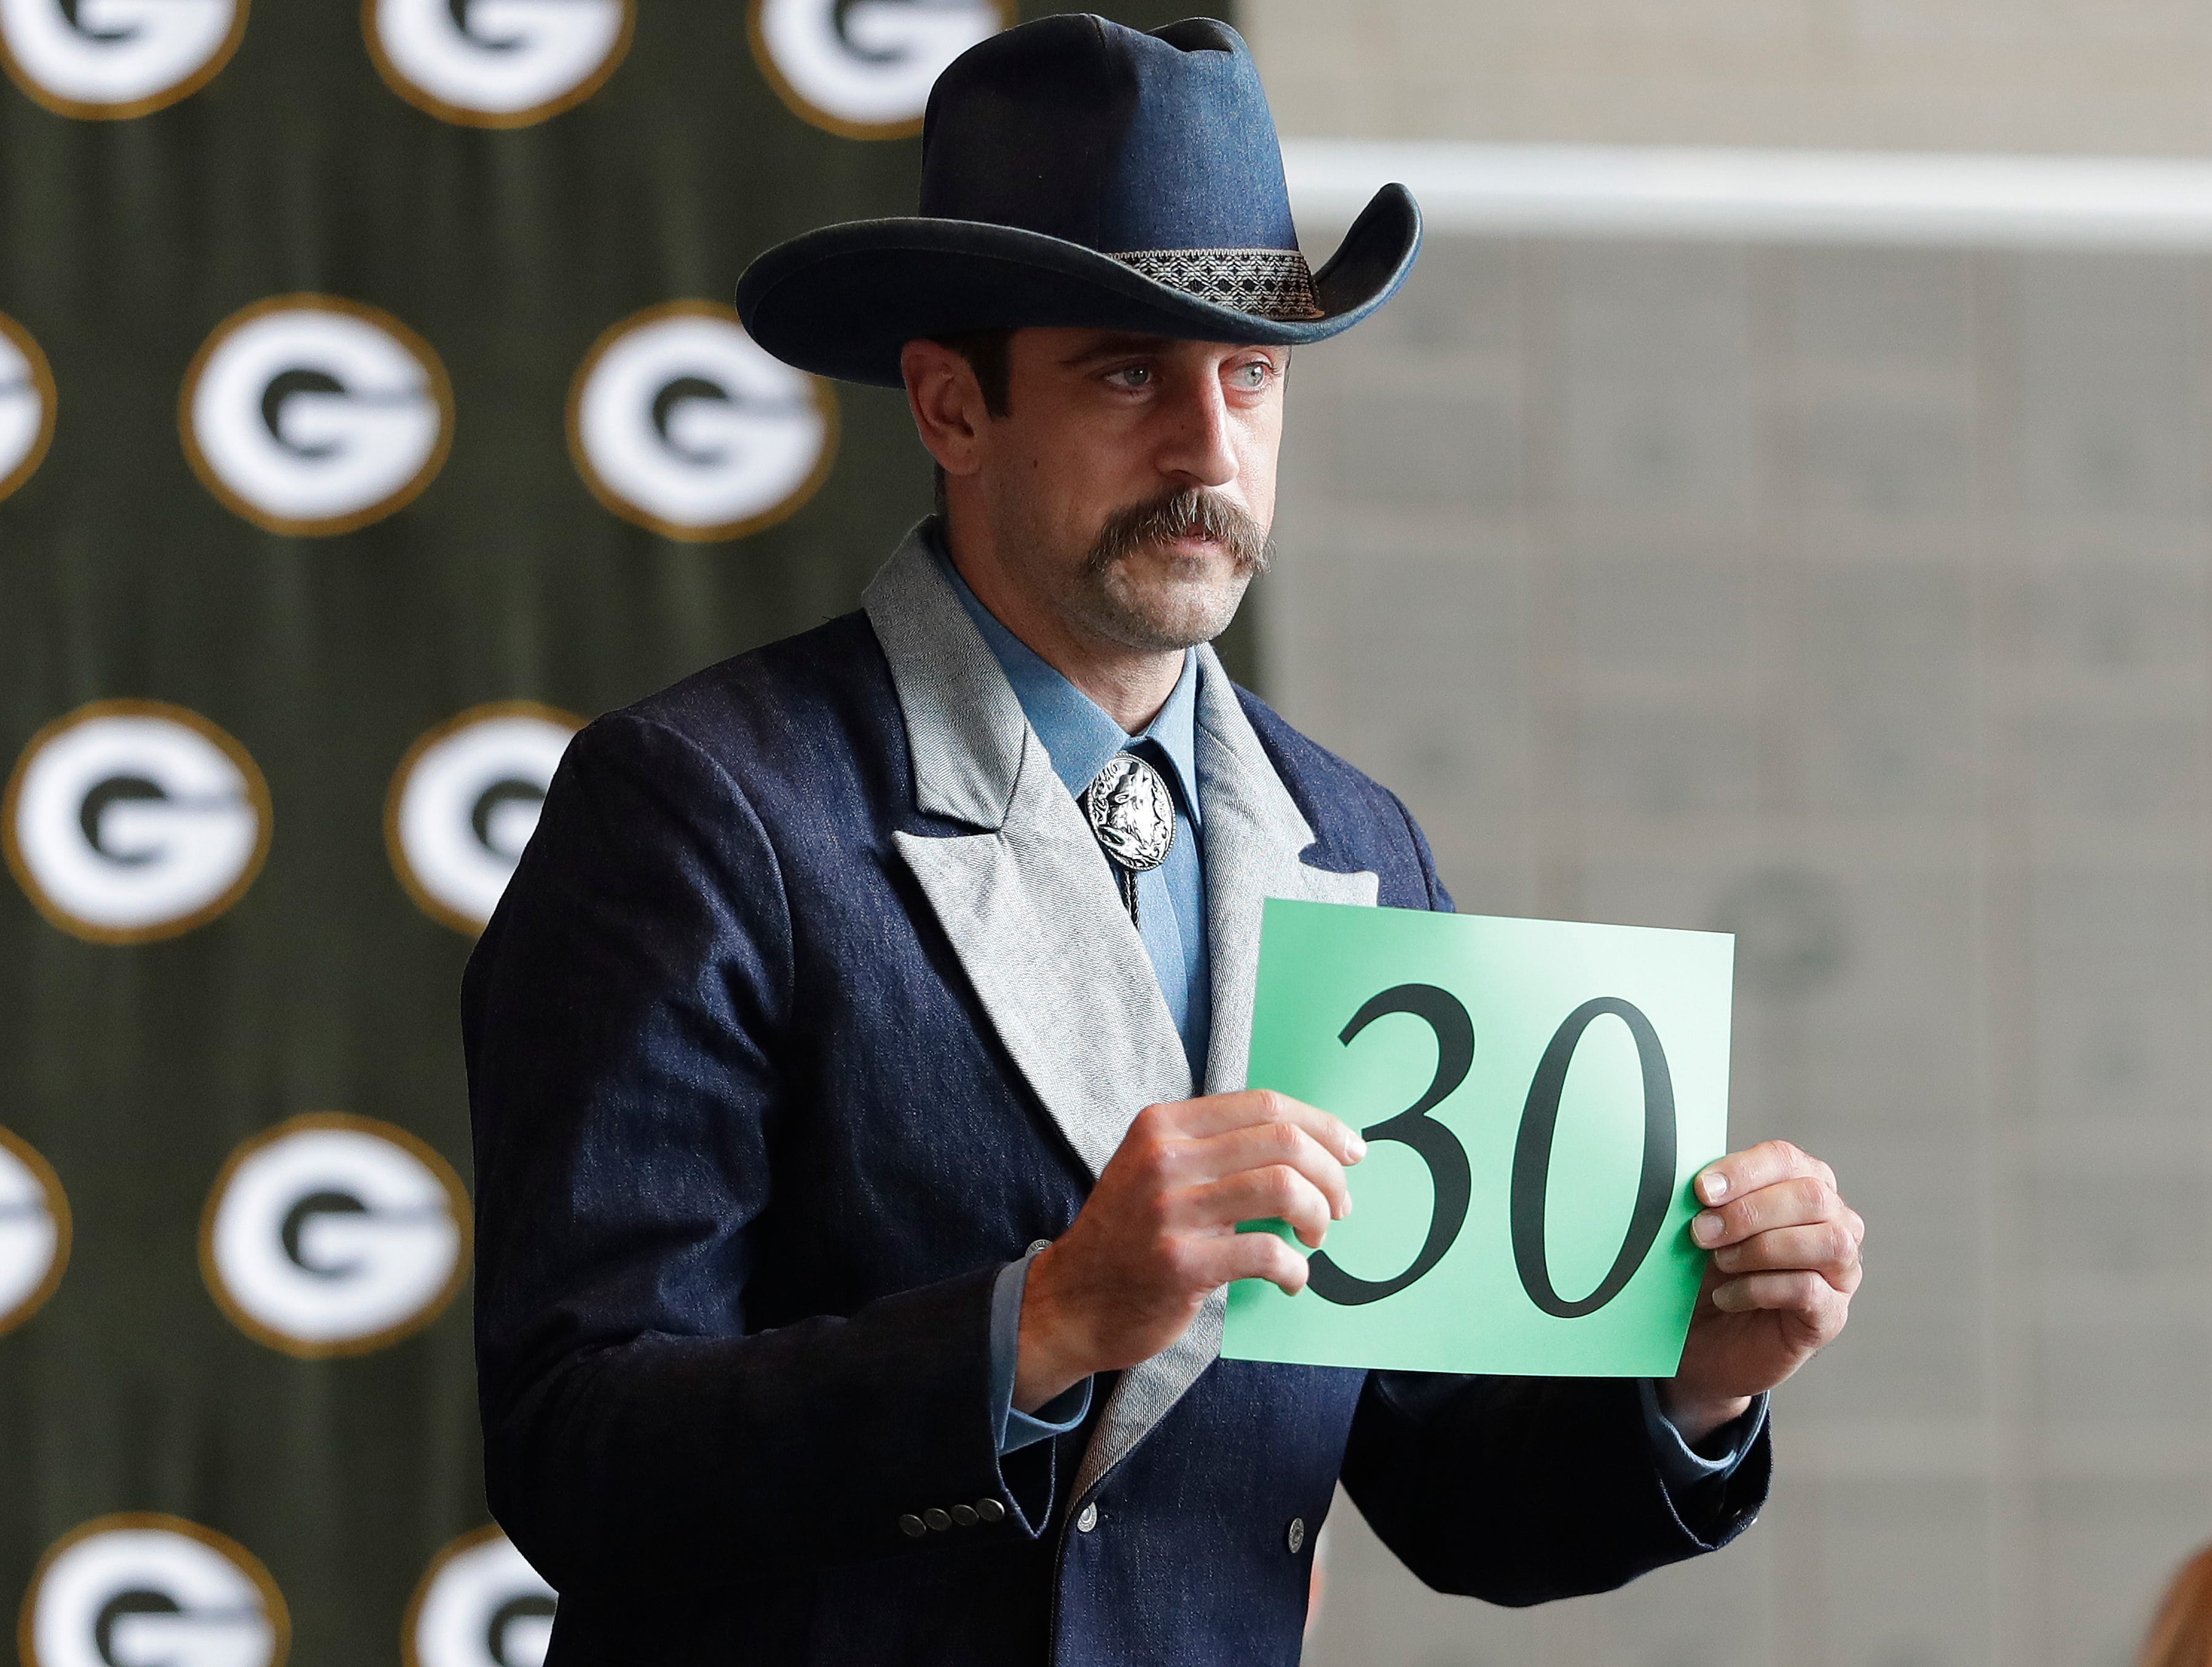 Green Bay Packers quarterback Aaron Rodgers (12) during the Green Bay Chamber of Commerce Welcome Back Packers Luncheon at Lambeau Field Wednesday, August 29, 2018 in Green Bay, Wis.